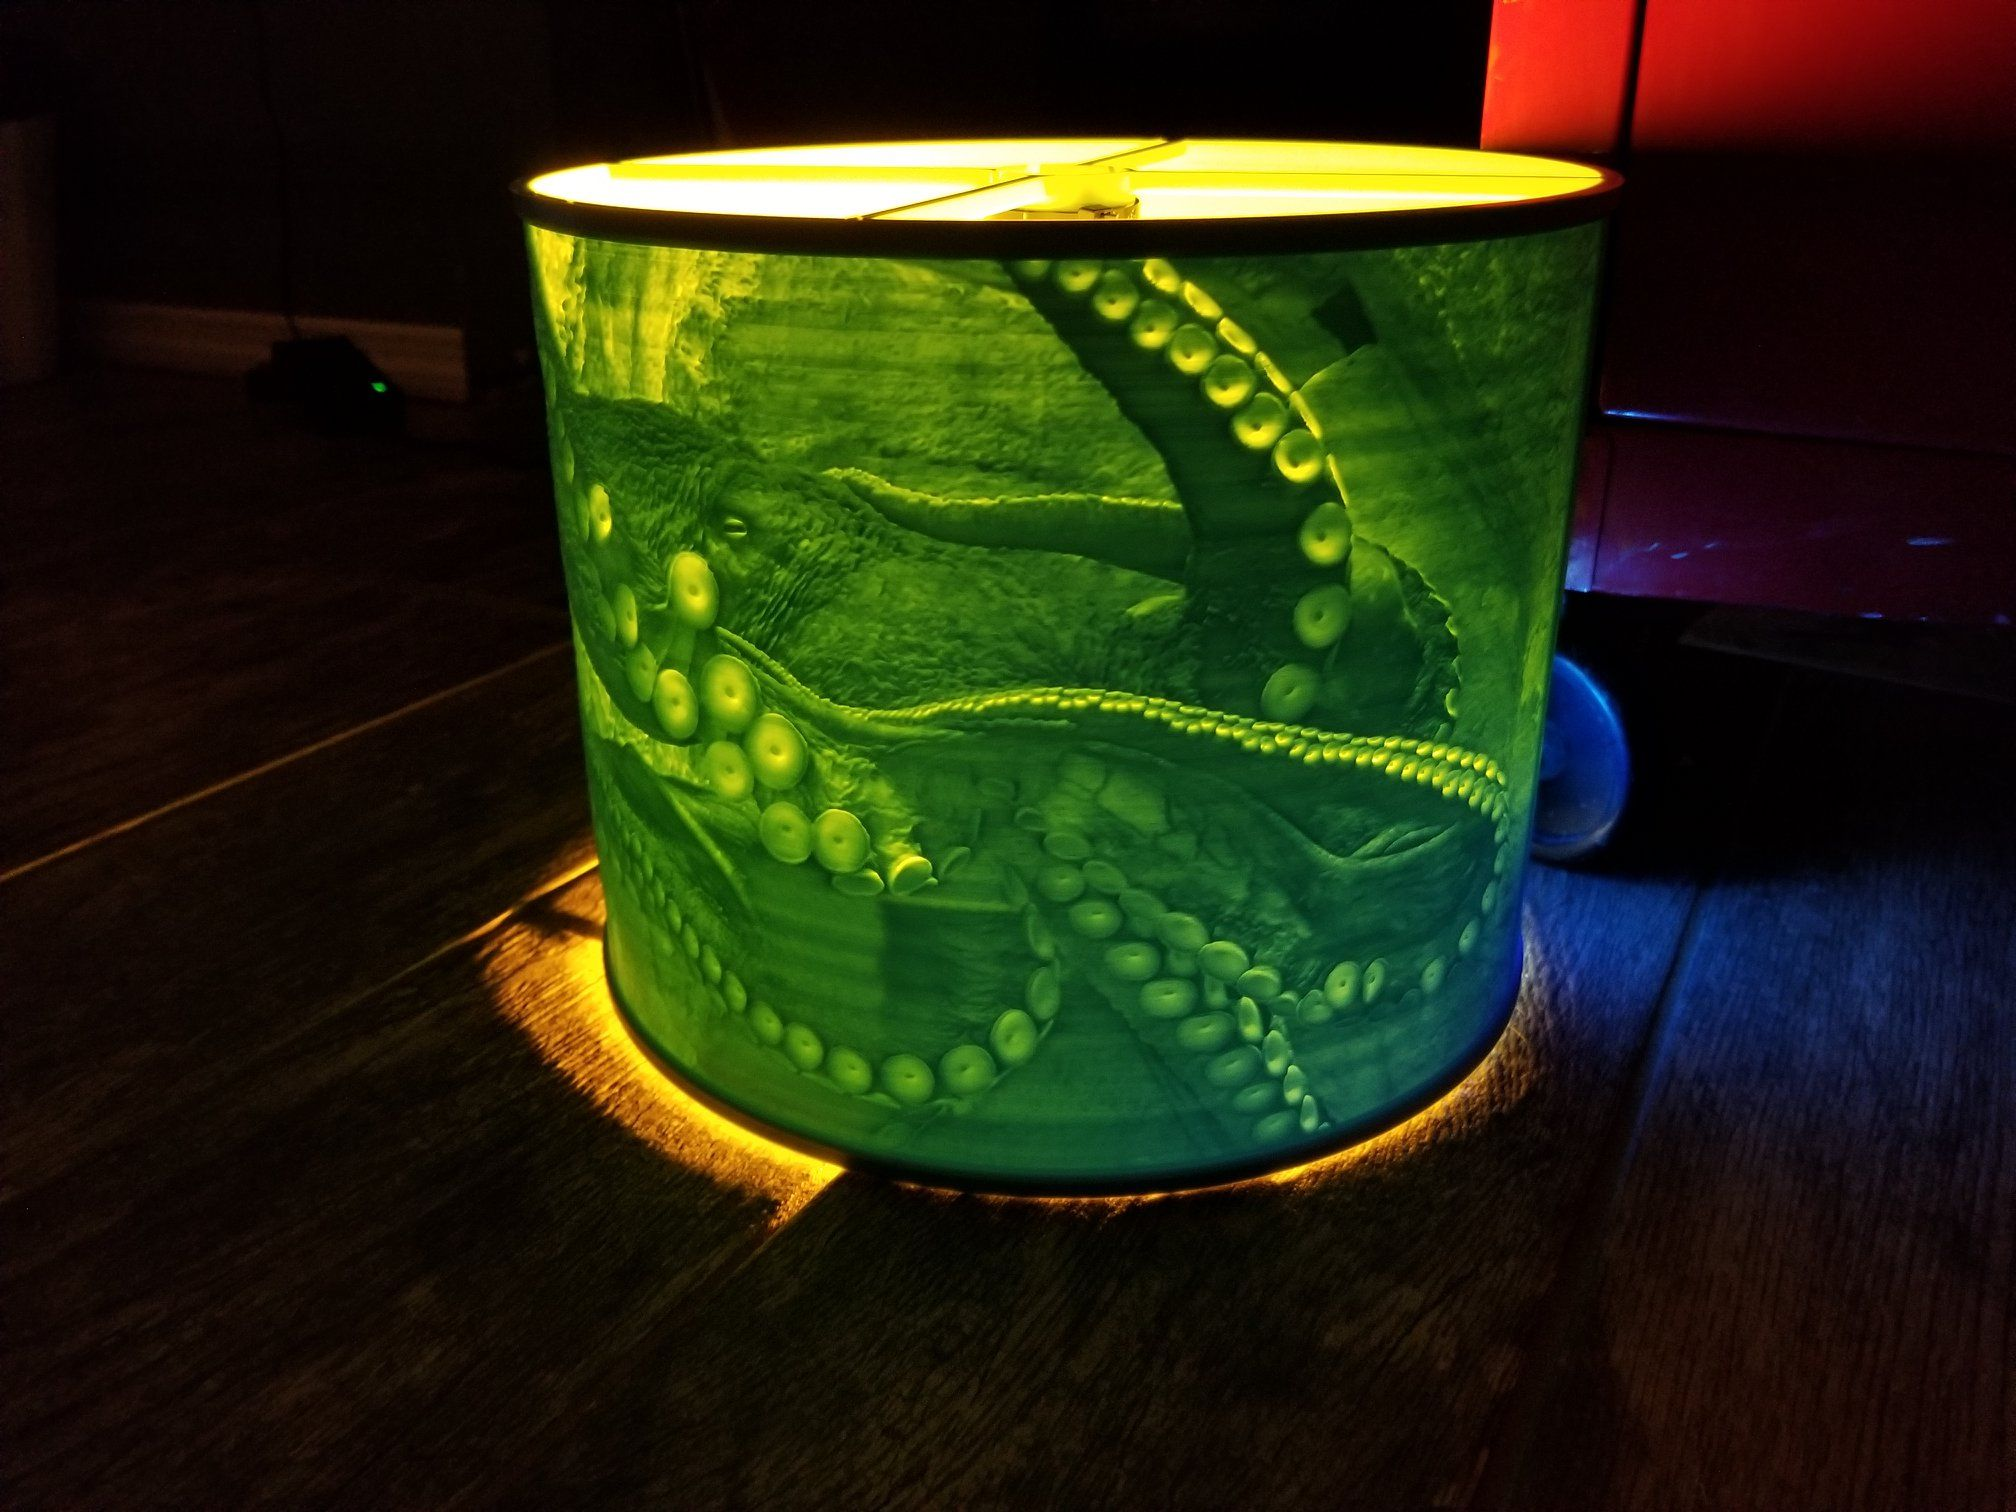 Pin By Tony On Lithopane Lampshade Designs 3d Printing Prints